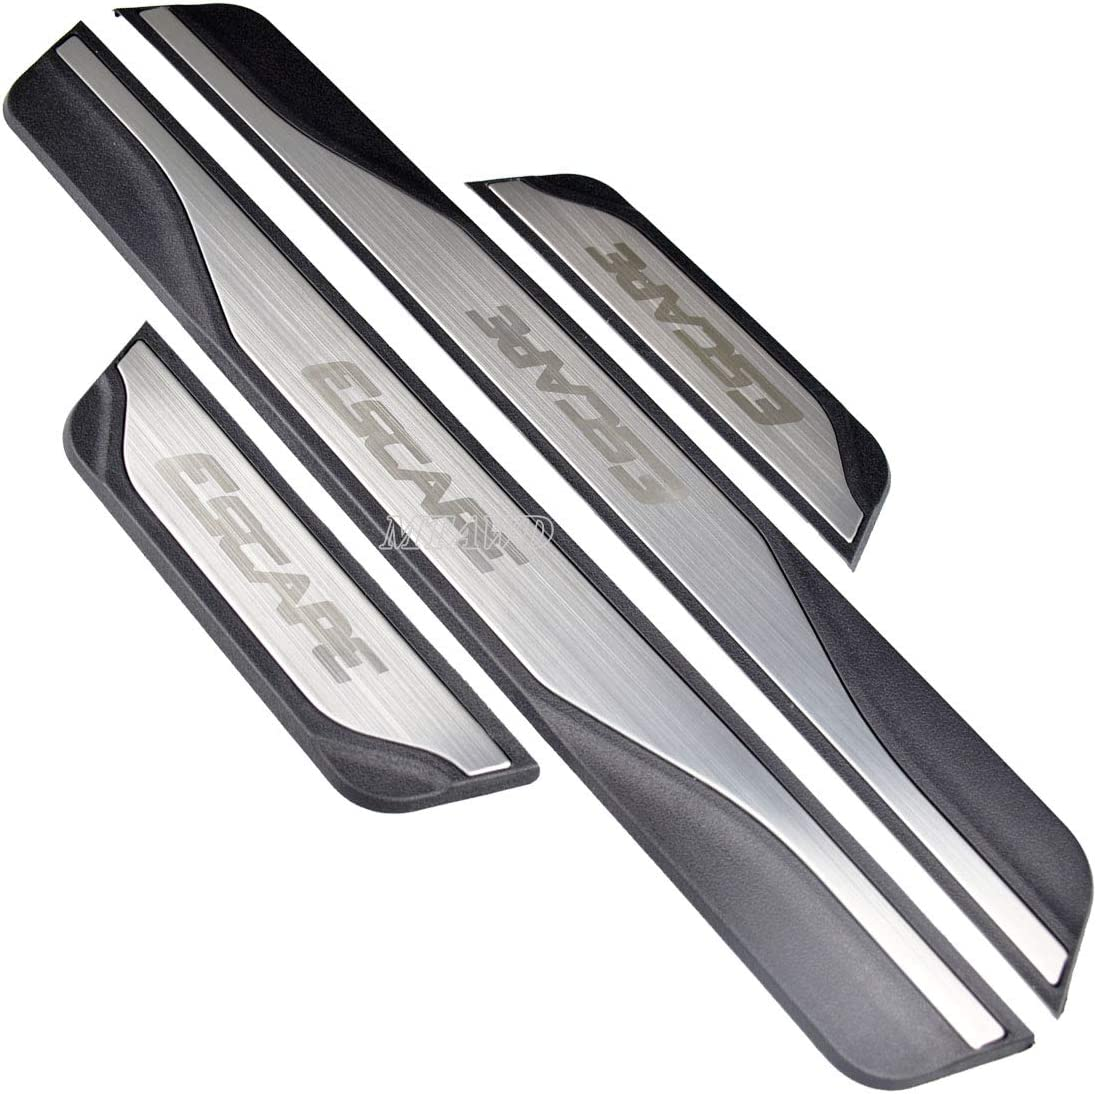 MTAWD Stainless Car Door Sill Scuff Plate Kick Pedal Protectors for Ford  Escape 21 21